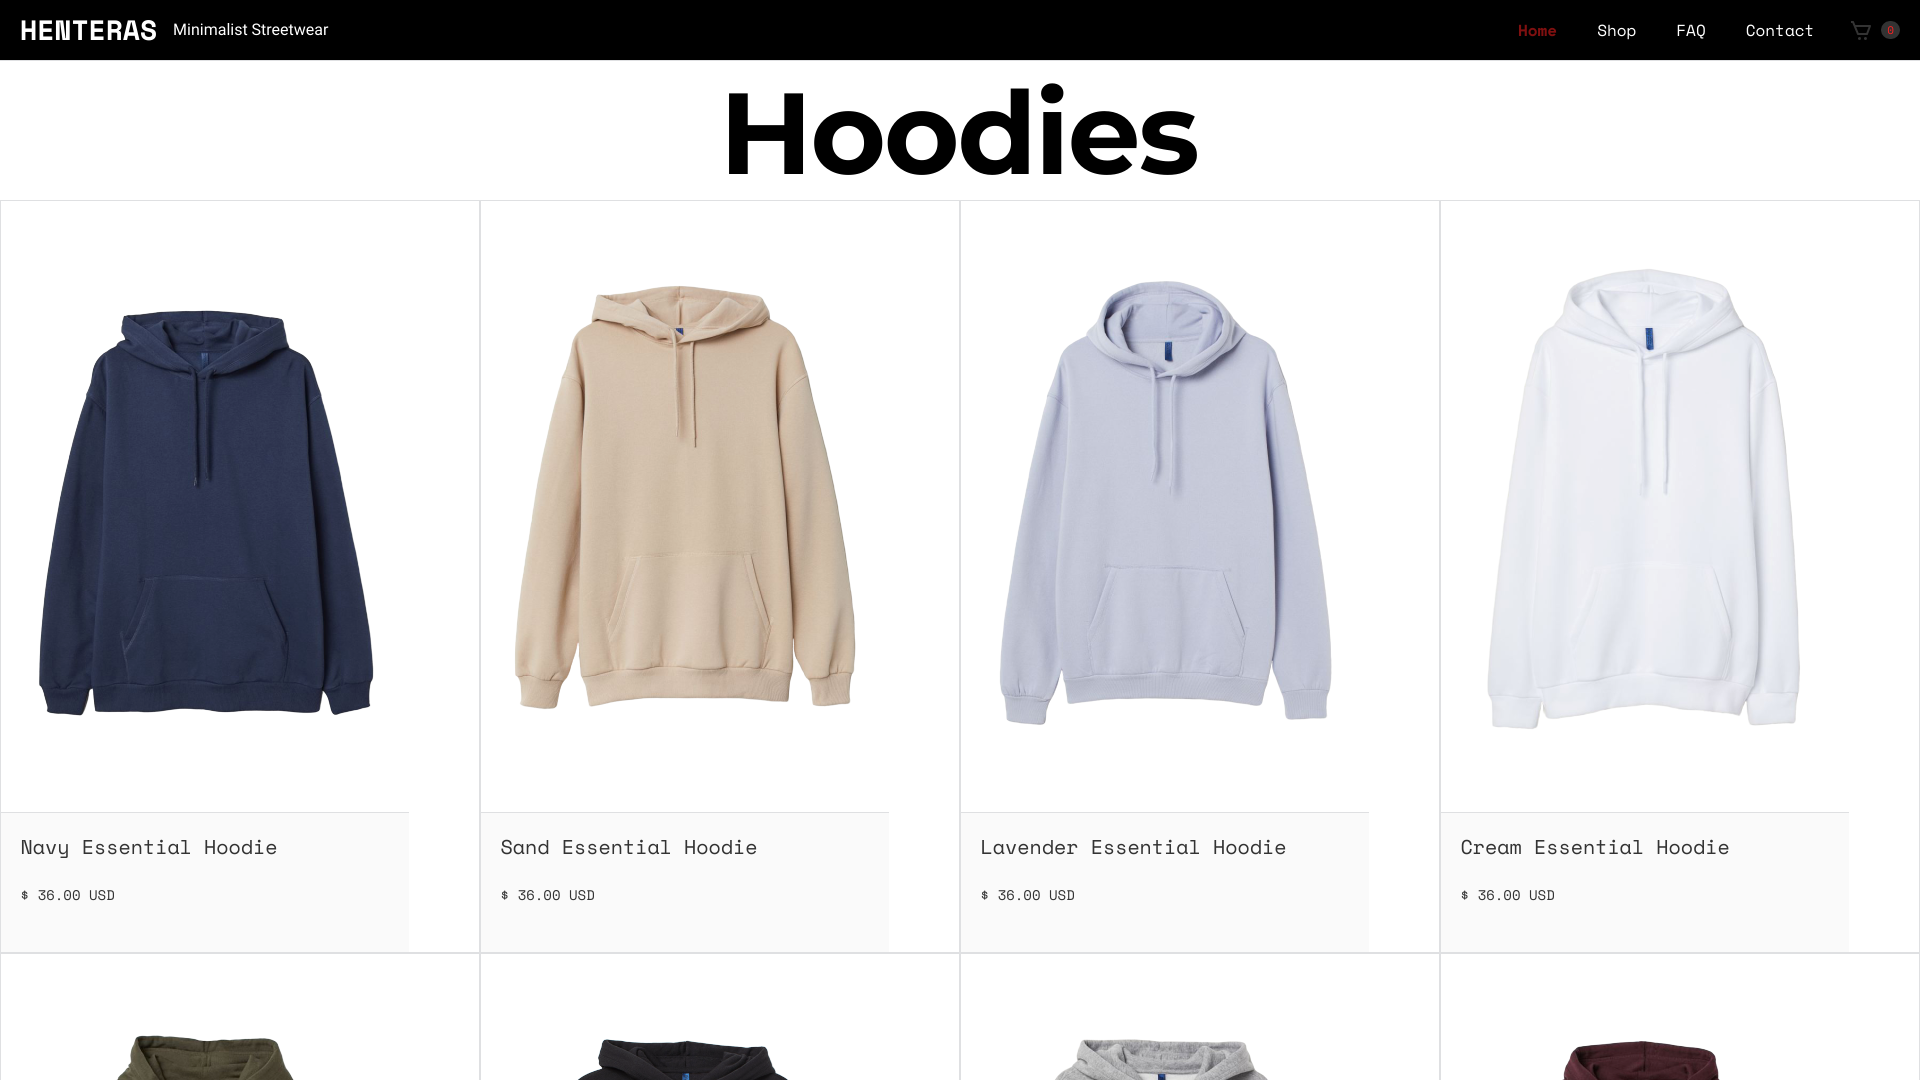 Is Henteras.net a Scam? See the Review of the Hoodie Store